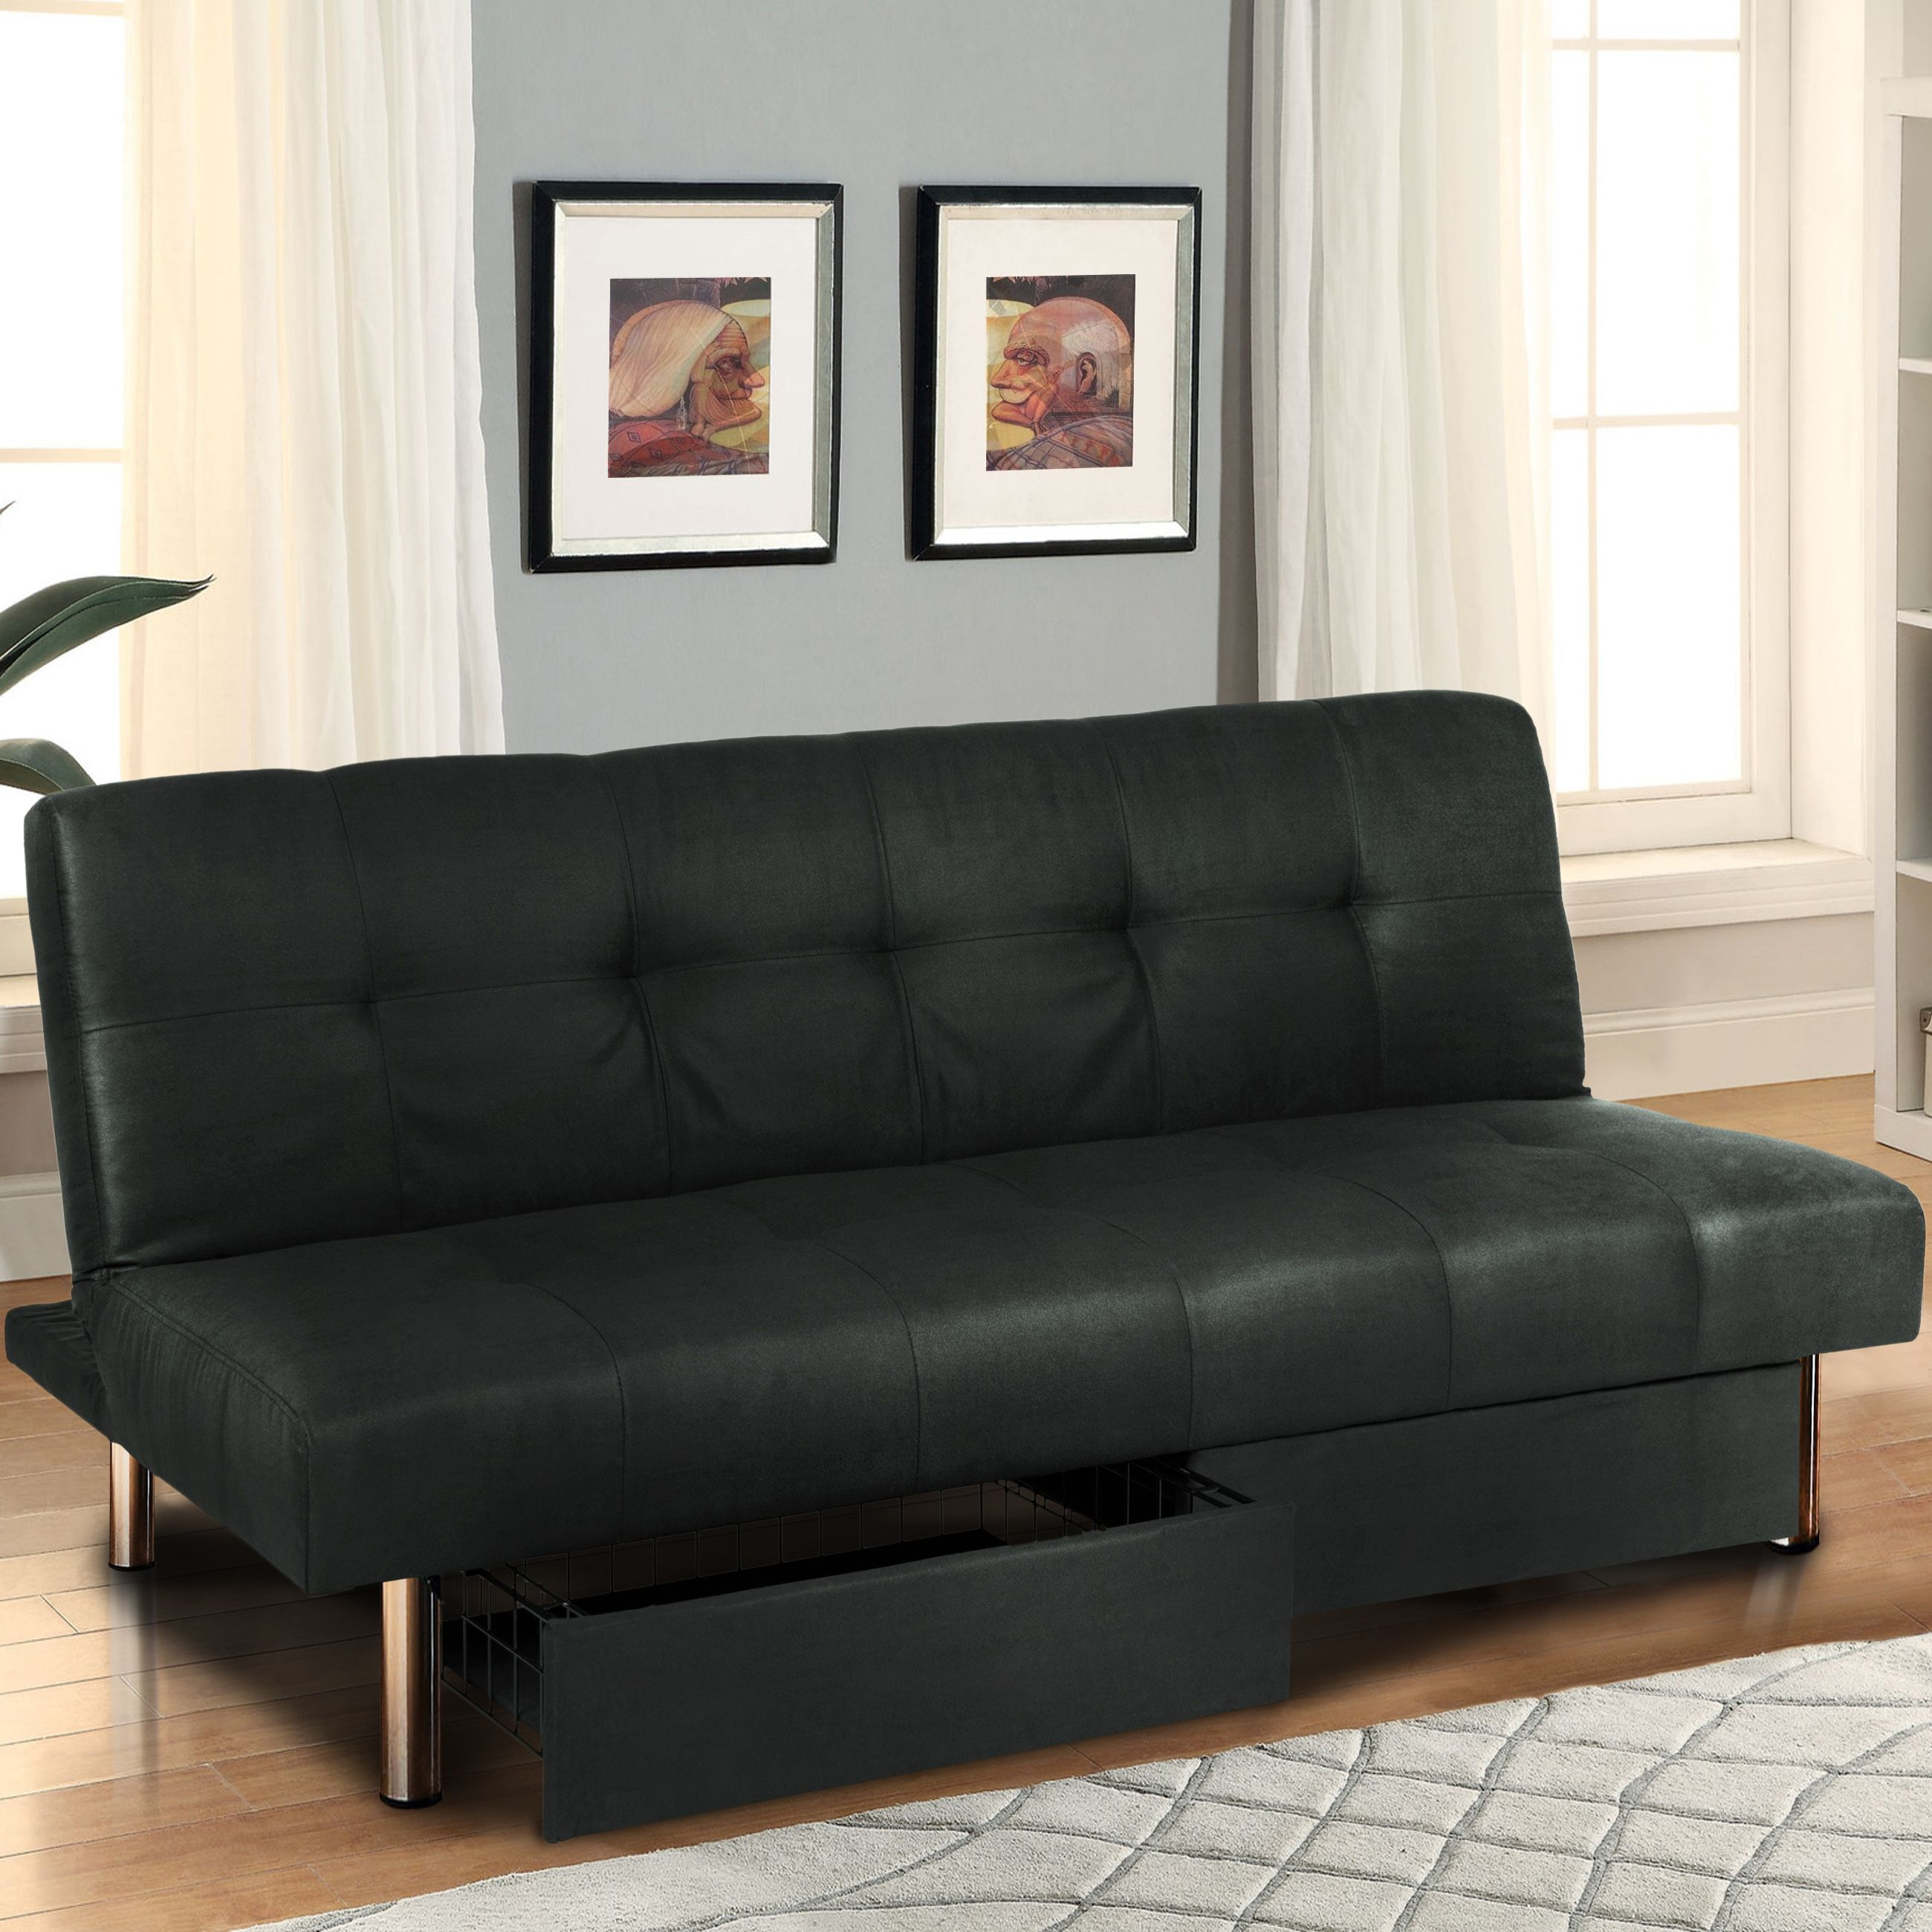 find and compare more furniture deals at http extrabigfoot com